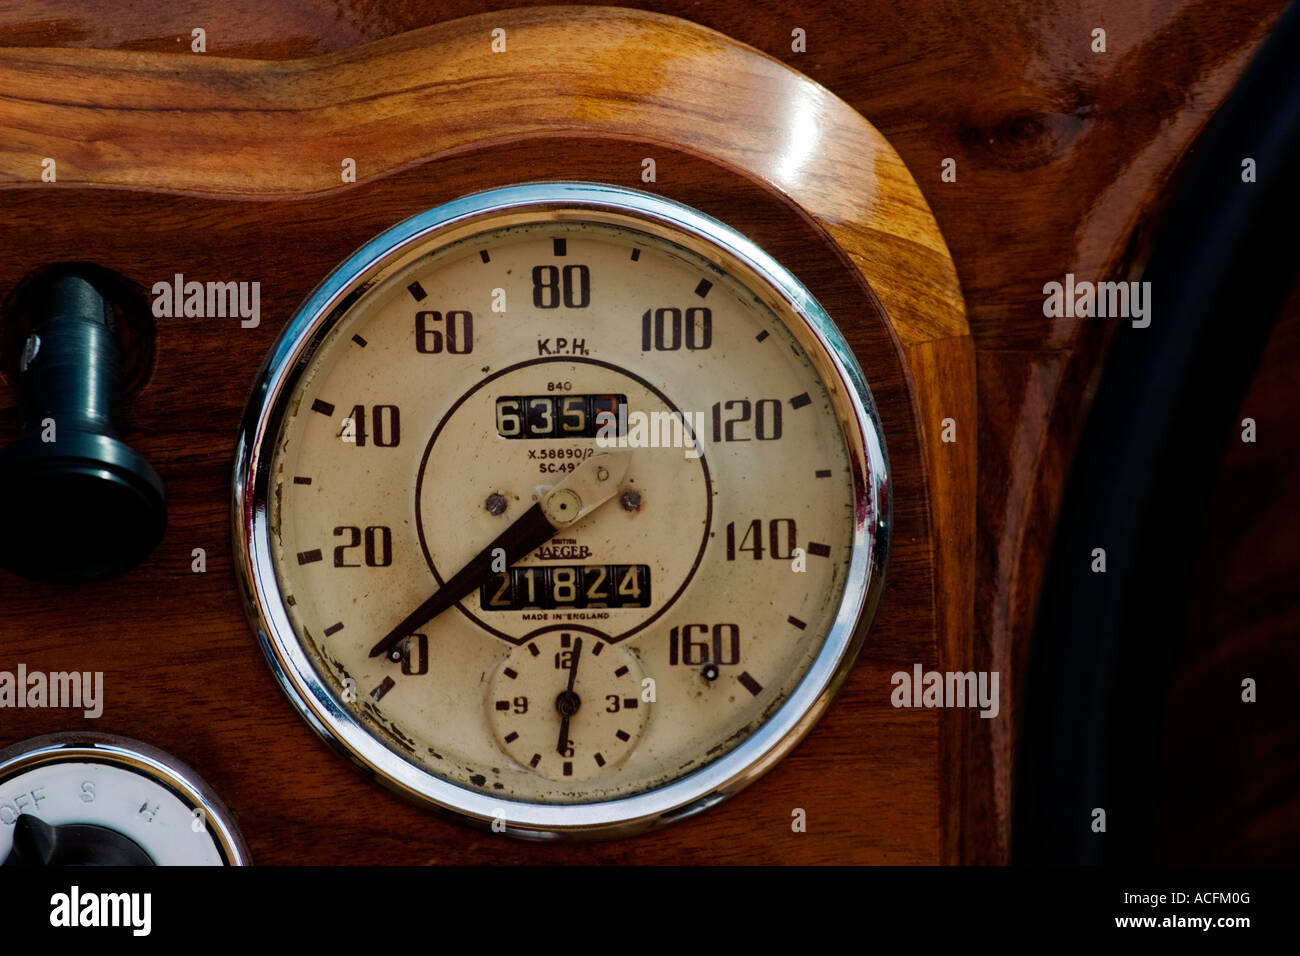 Speedometer in a wooden dashboard - Stock Image